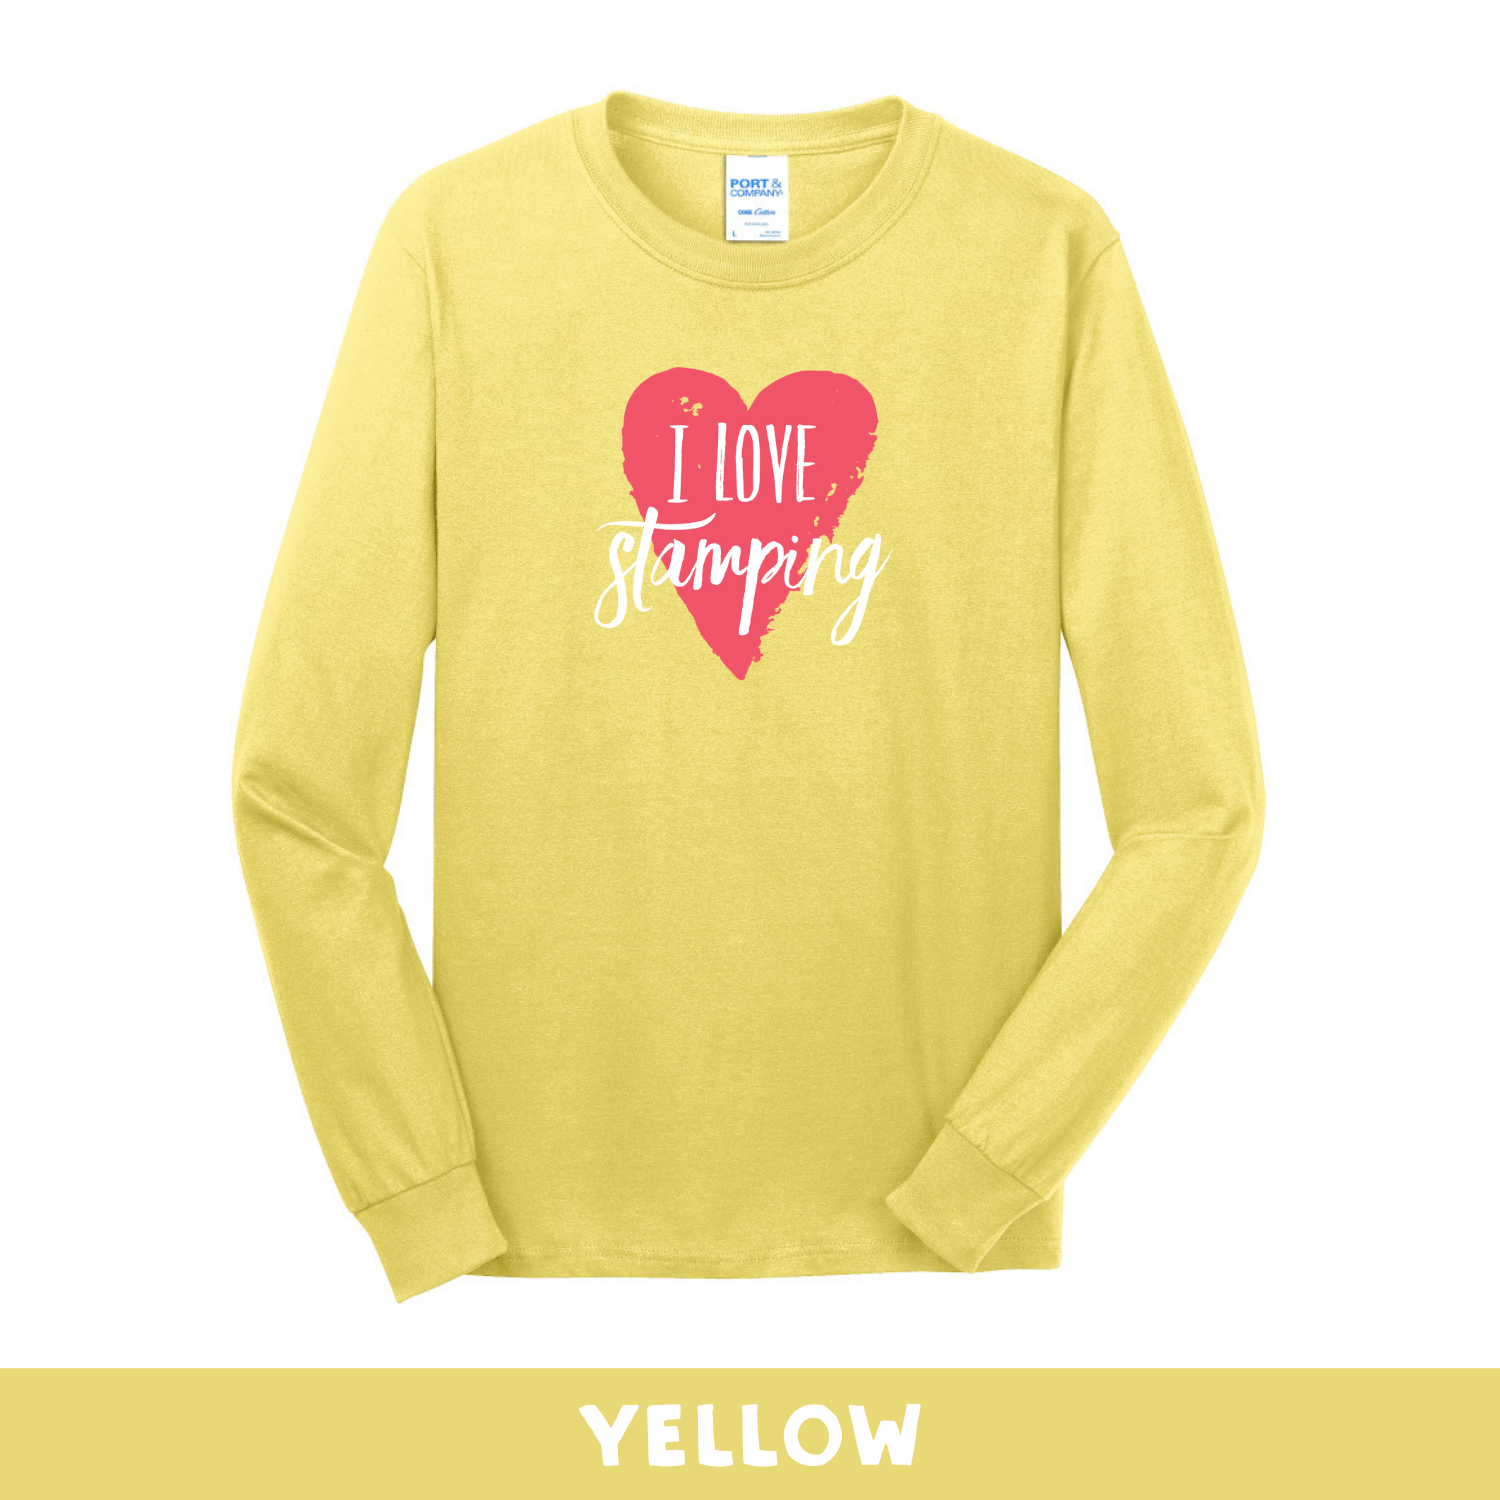 Yellow - Long Sleeve Unisex T-Shirt - I Love Stamping